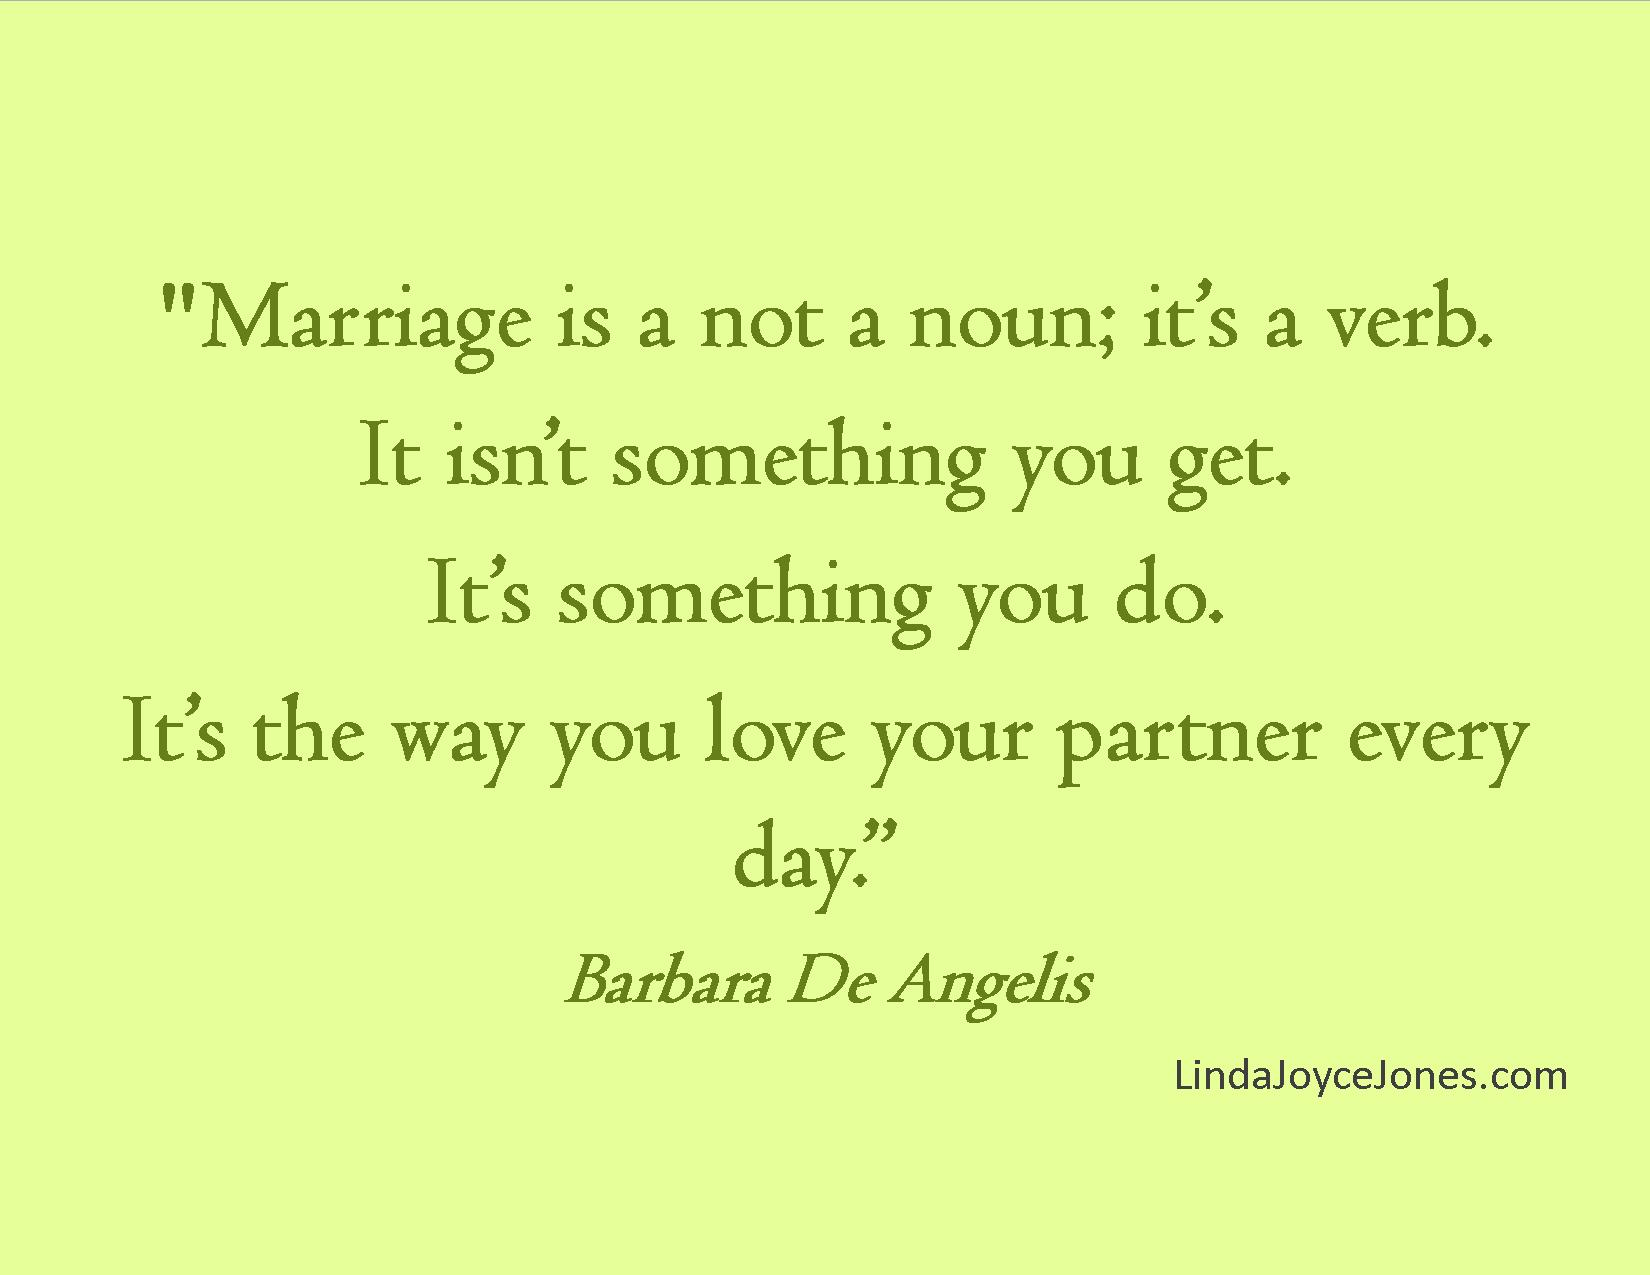 Love Quotes For Him Married : Quotes About Love Tagalog Tumblr And Life for Him Cover Photo Tagalog ...